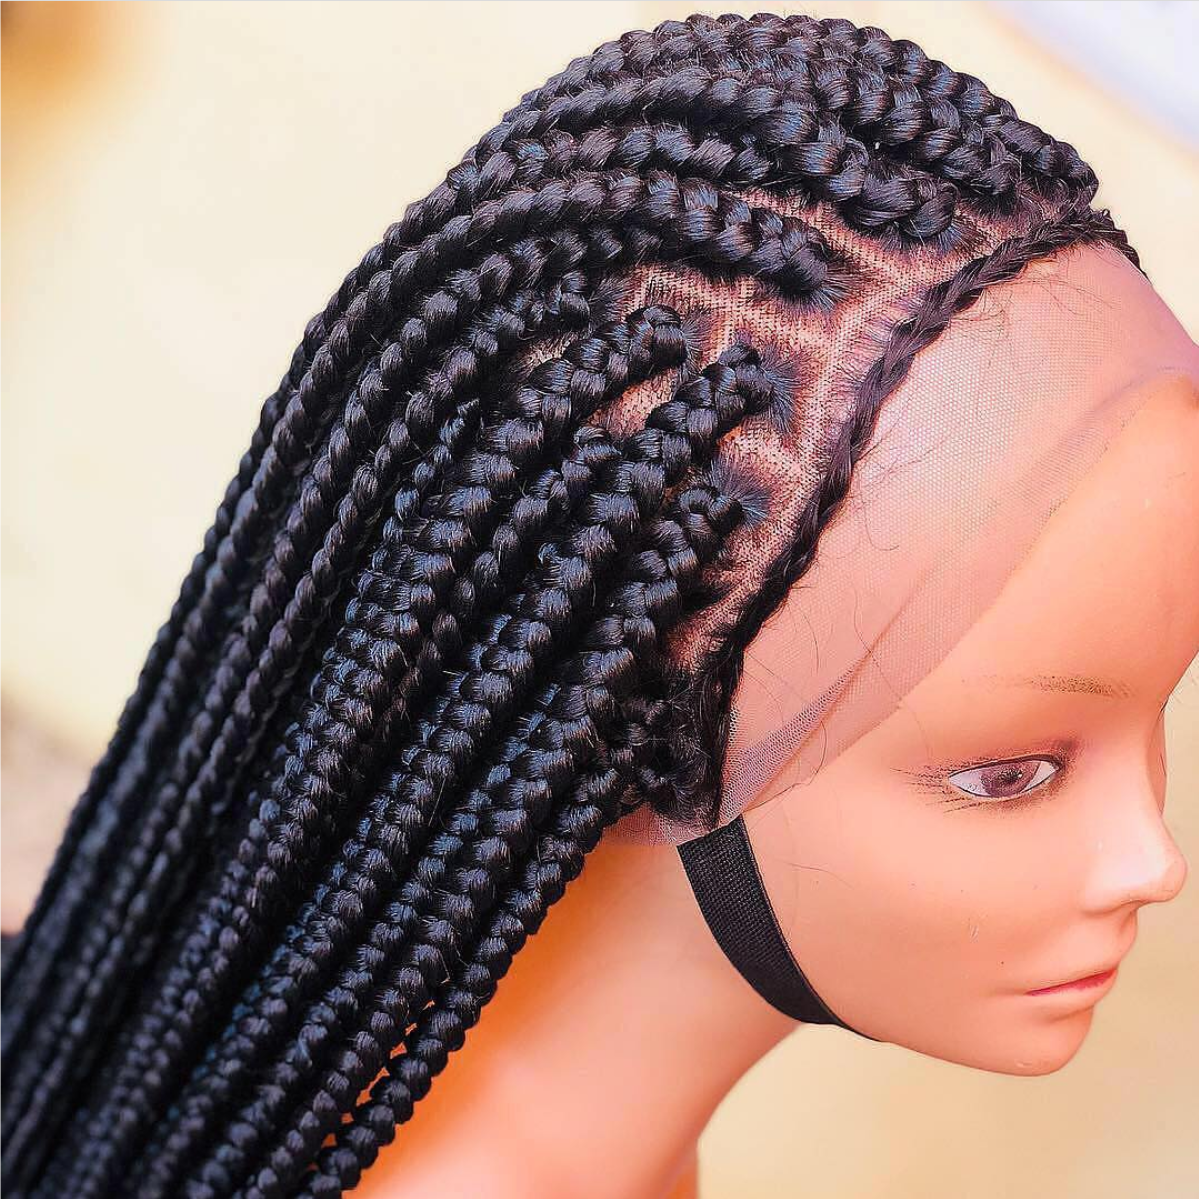 Bendicion braided wigs.